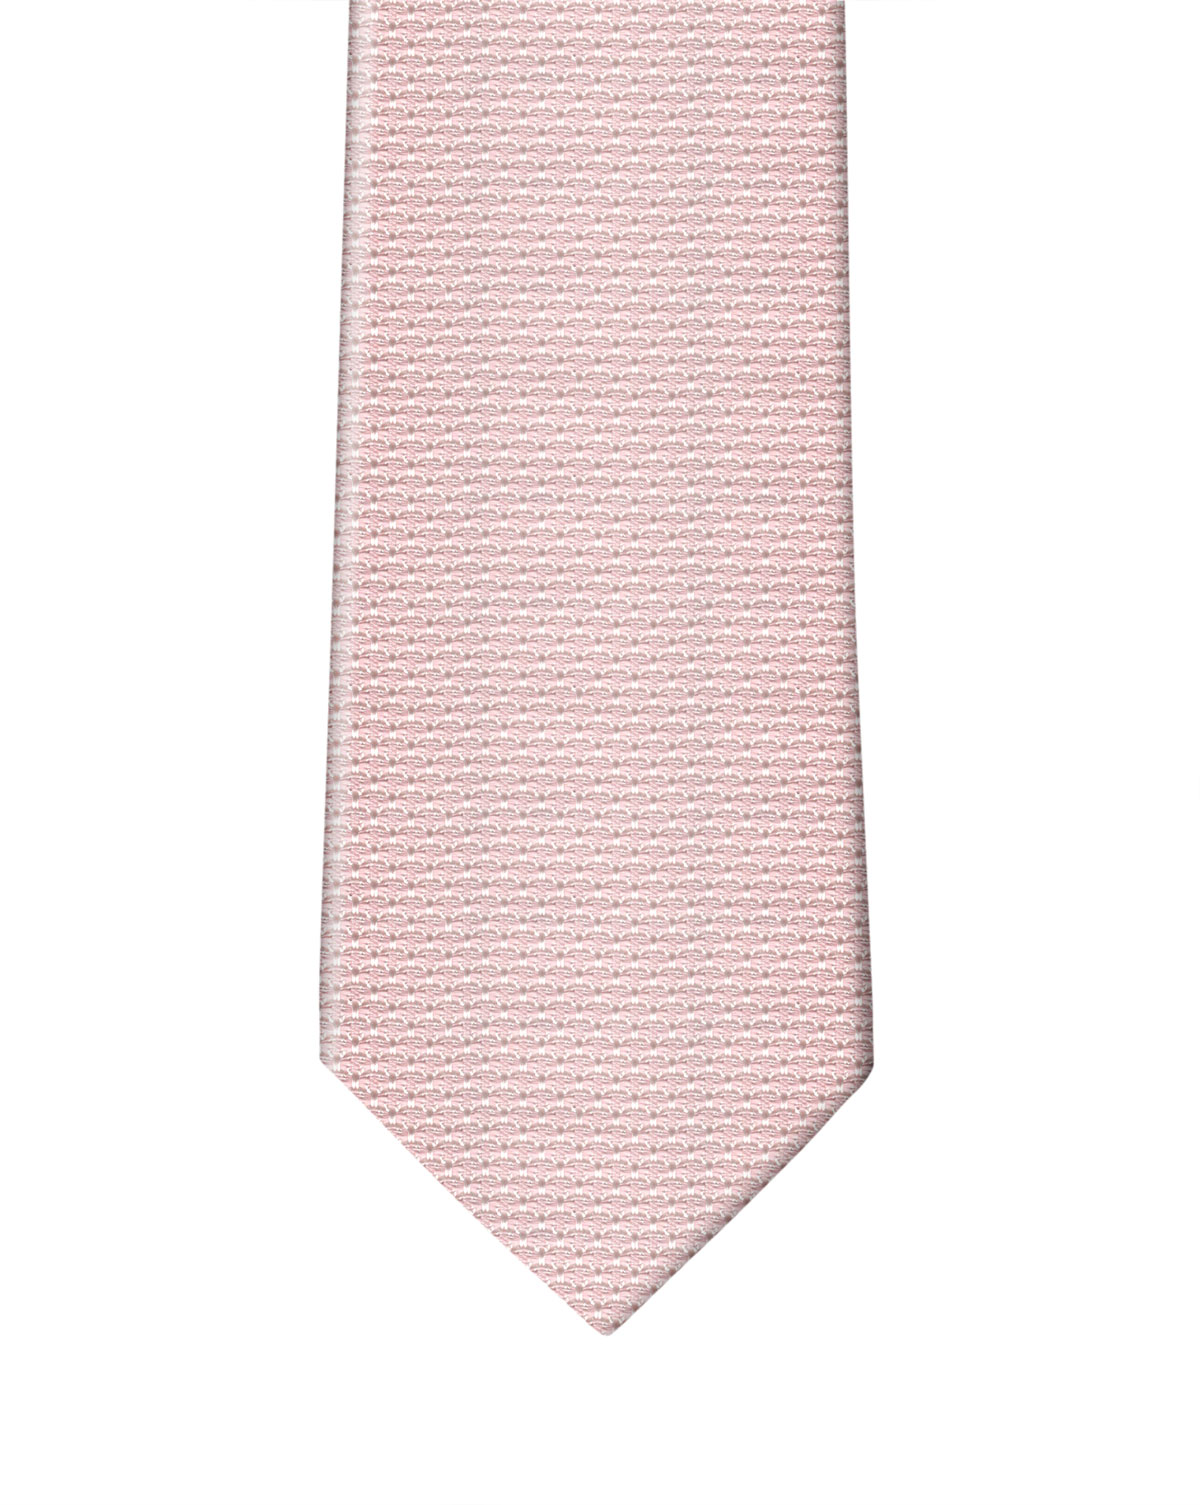 Pink with White Grenadine Necktie